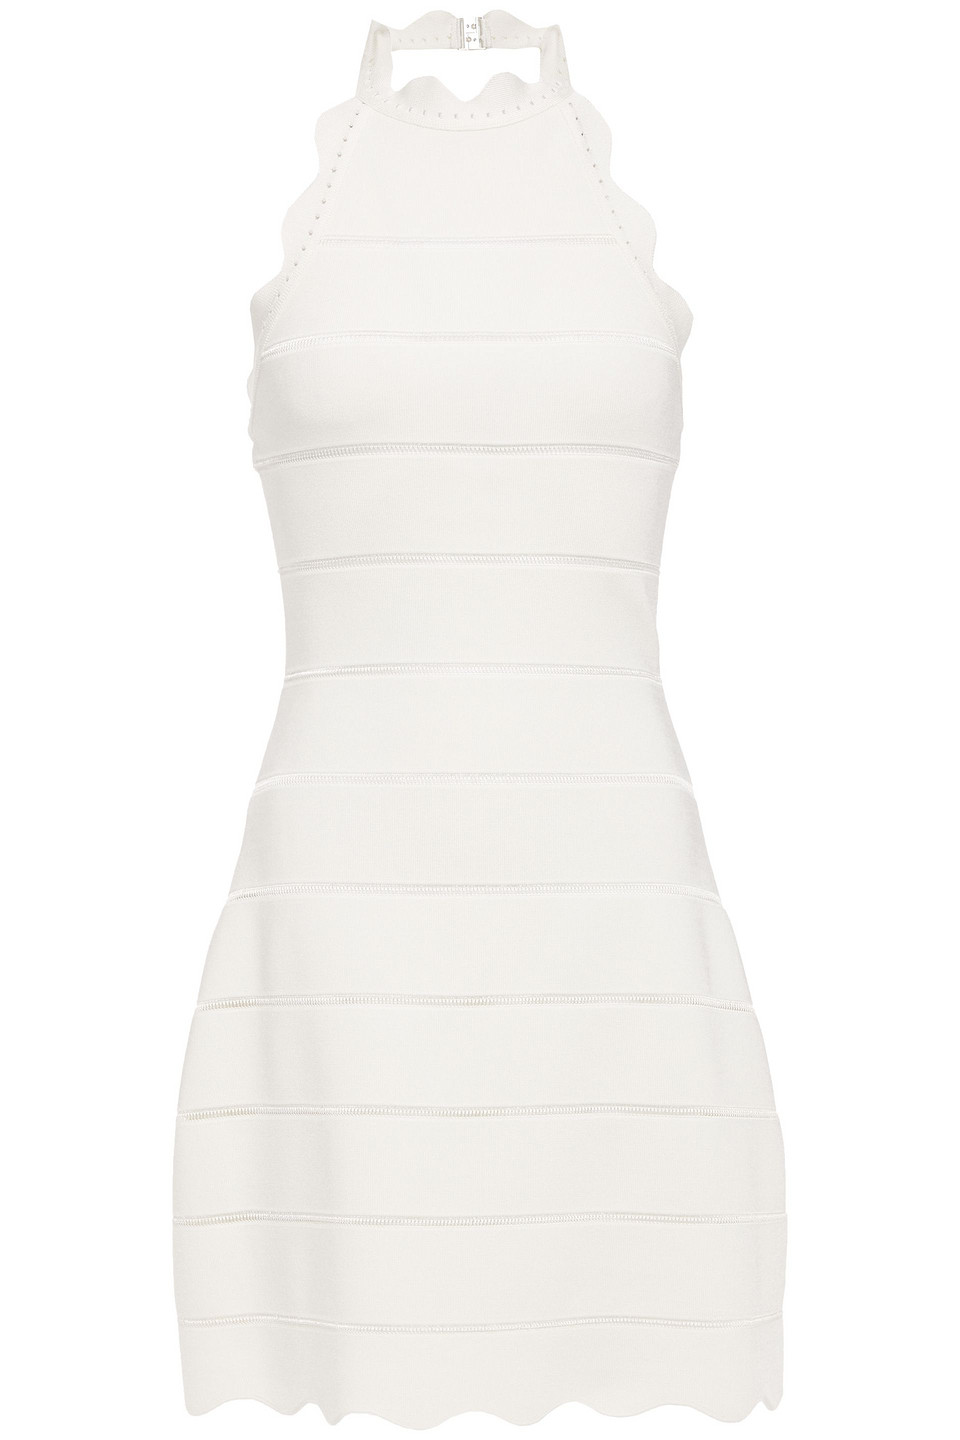 Hervé Léger | Herve Leger Woman Scalloped Bandage Halterneck Mini Dress Off-white | Clouty